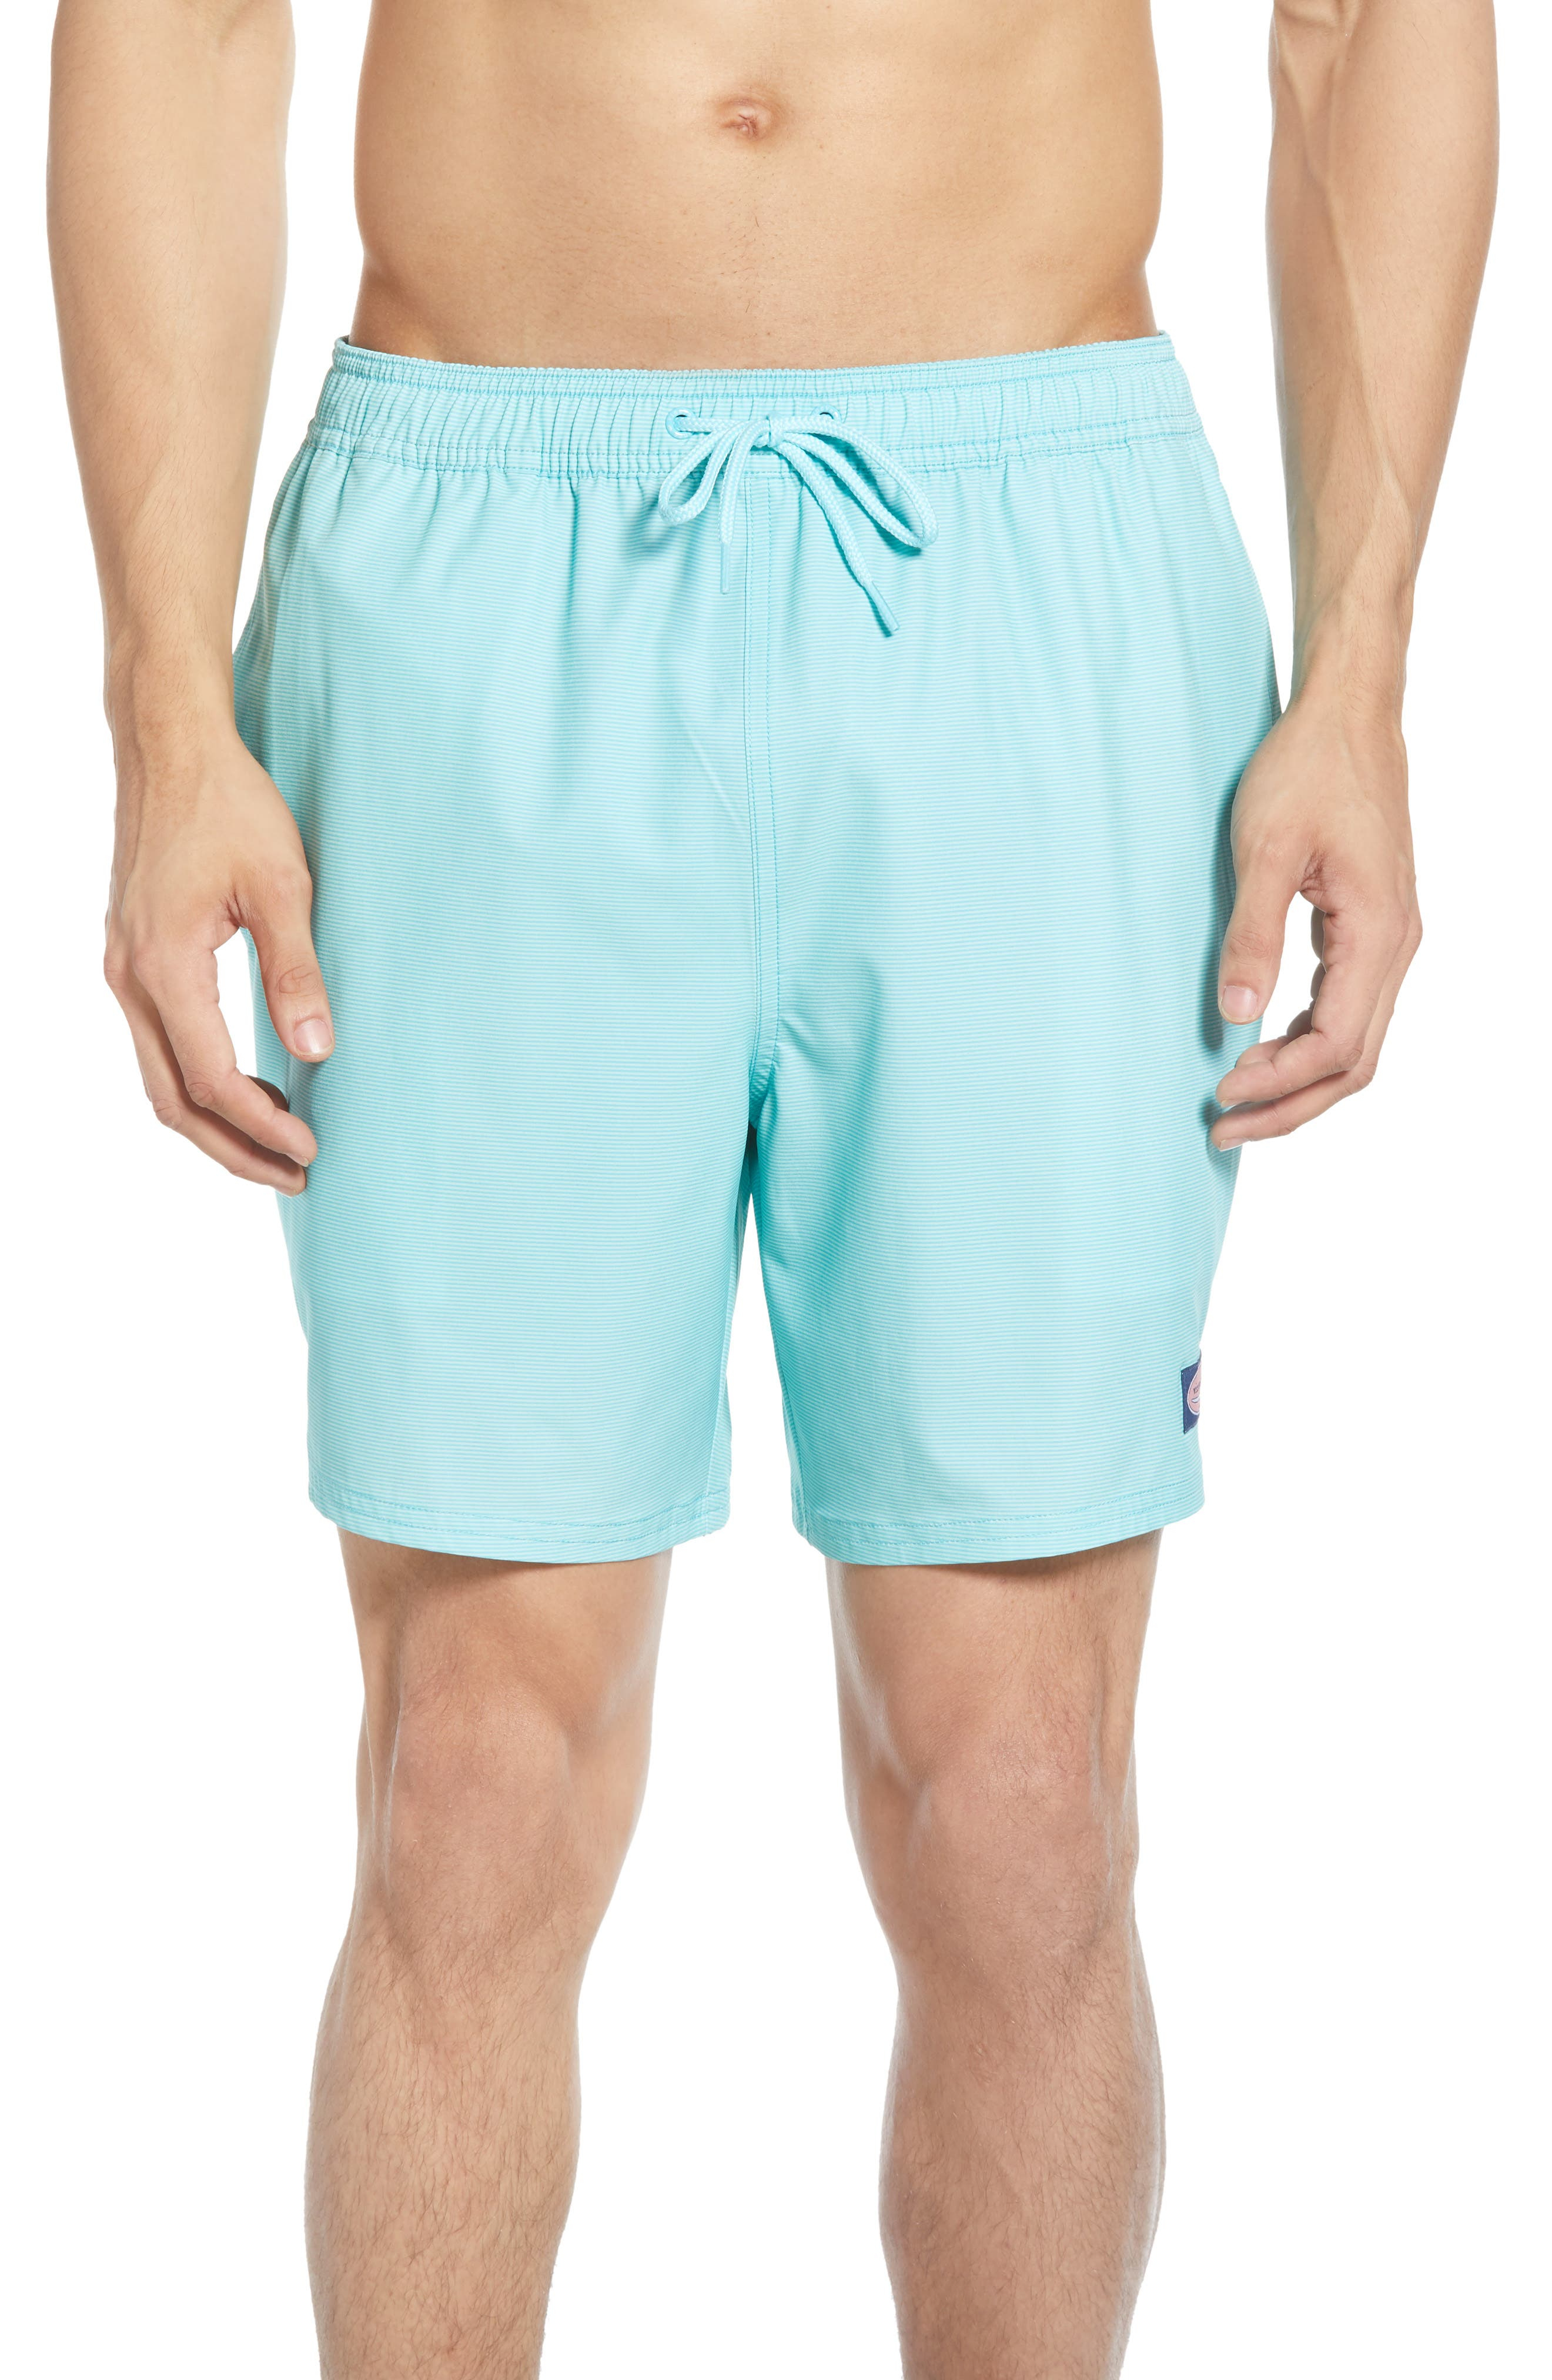 7dc3ca4c8f3ff vineyard vines Men's Swimwear Clothing | Nordstrom